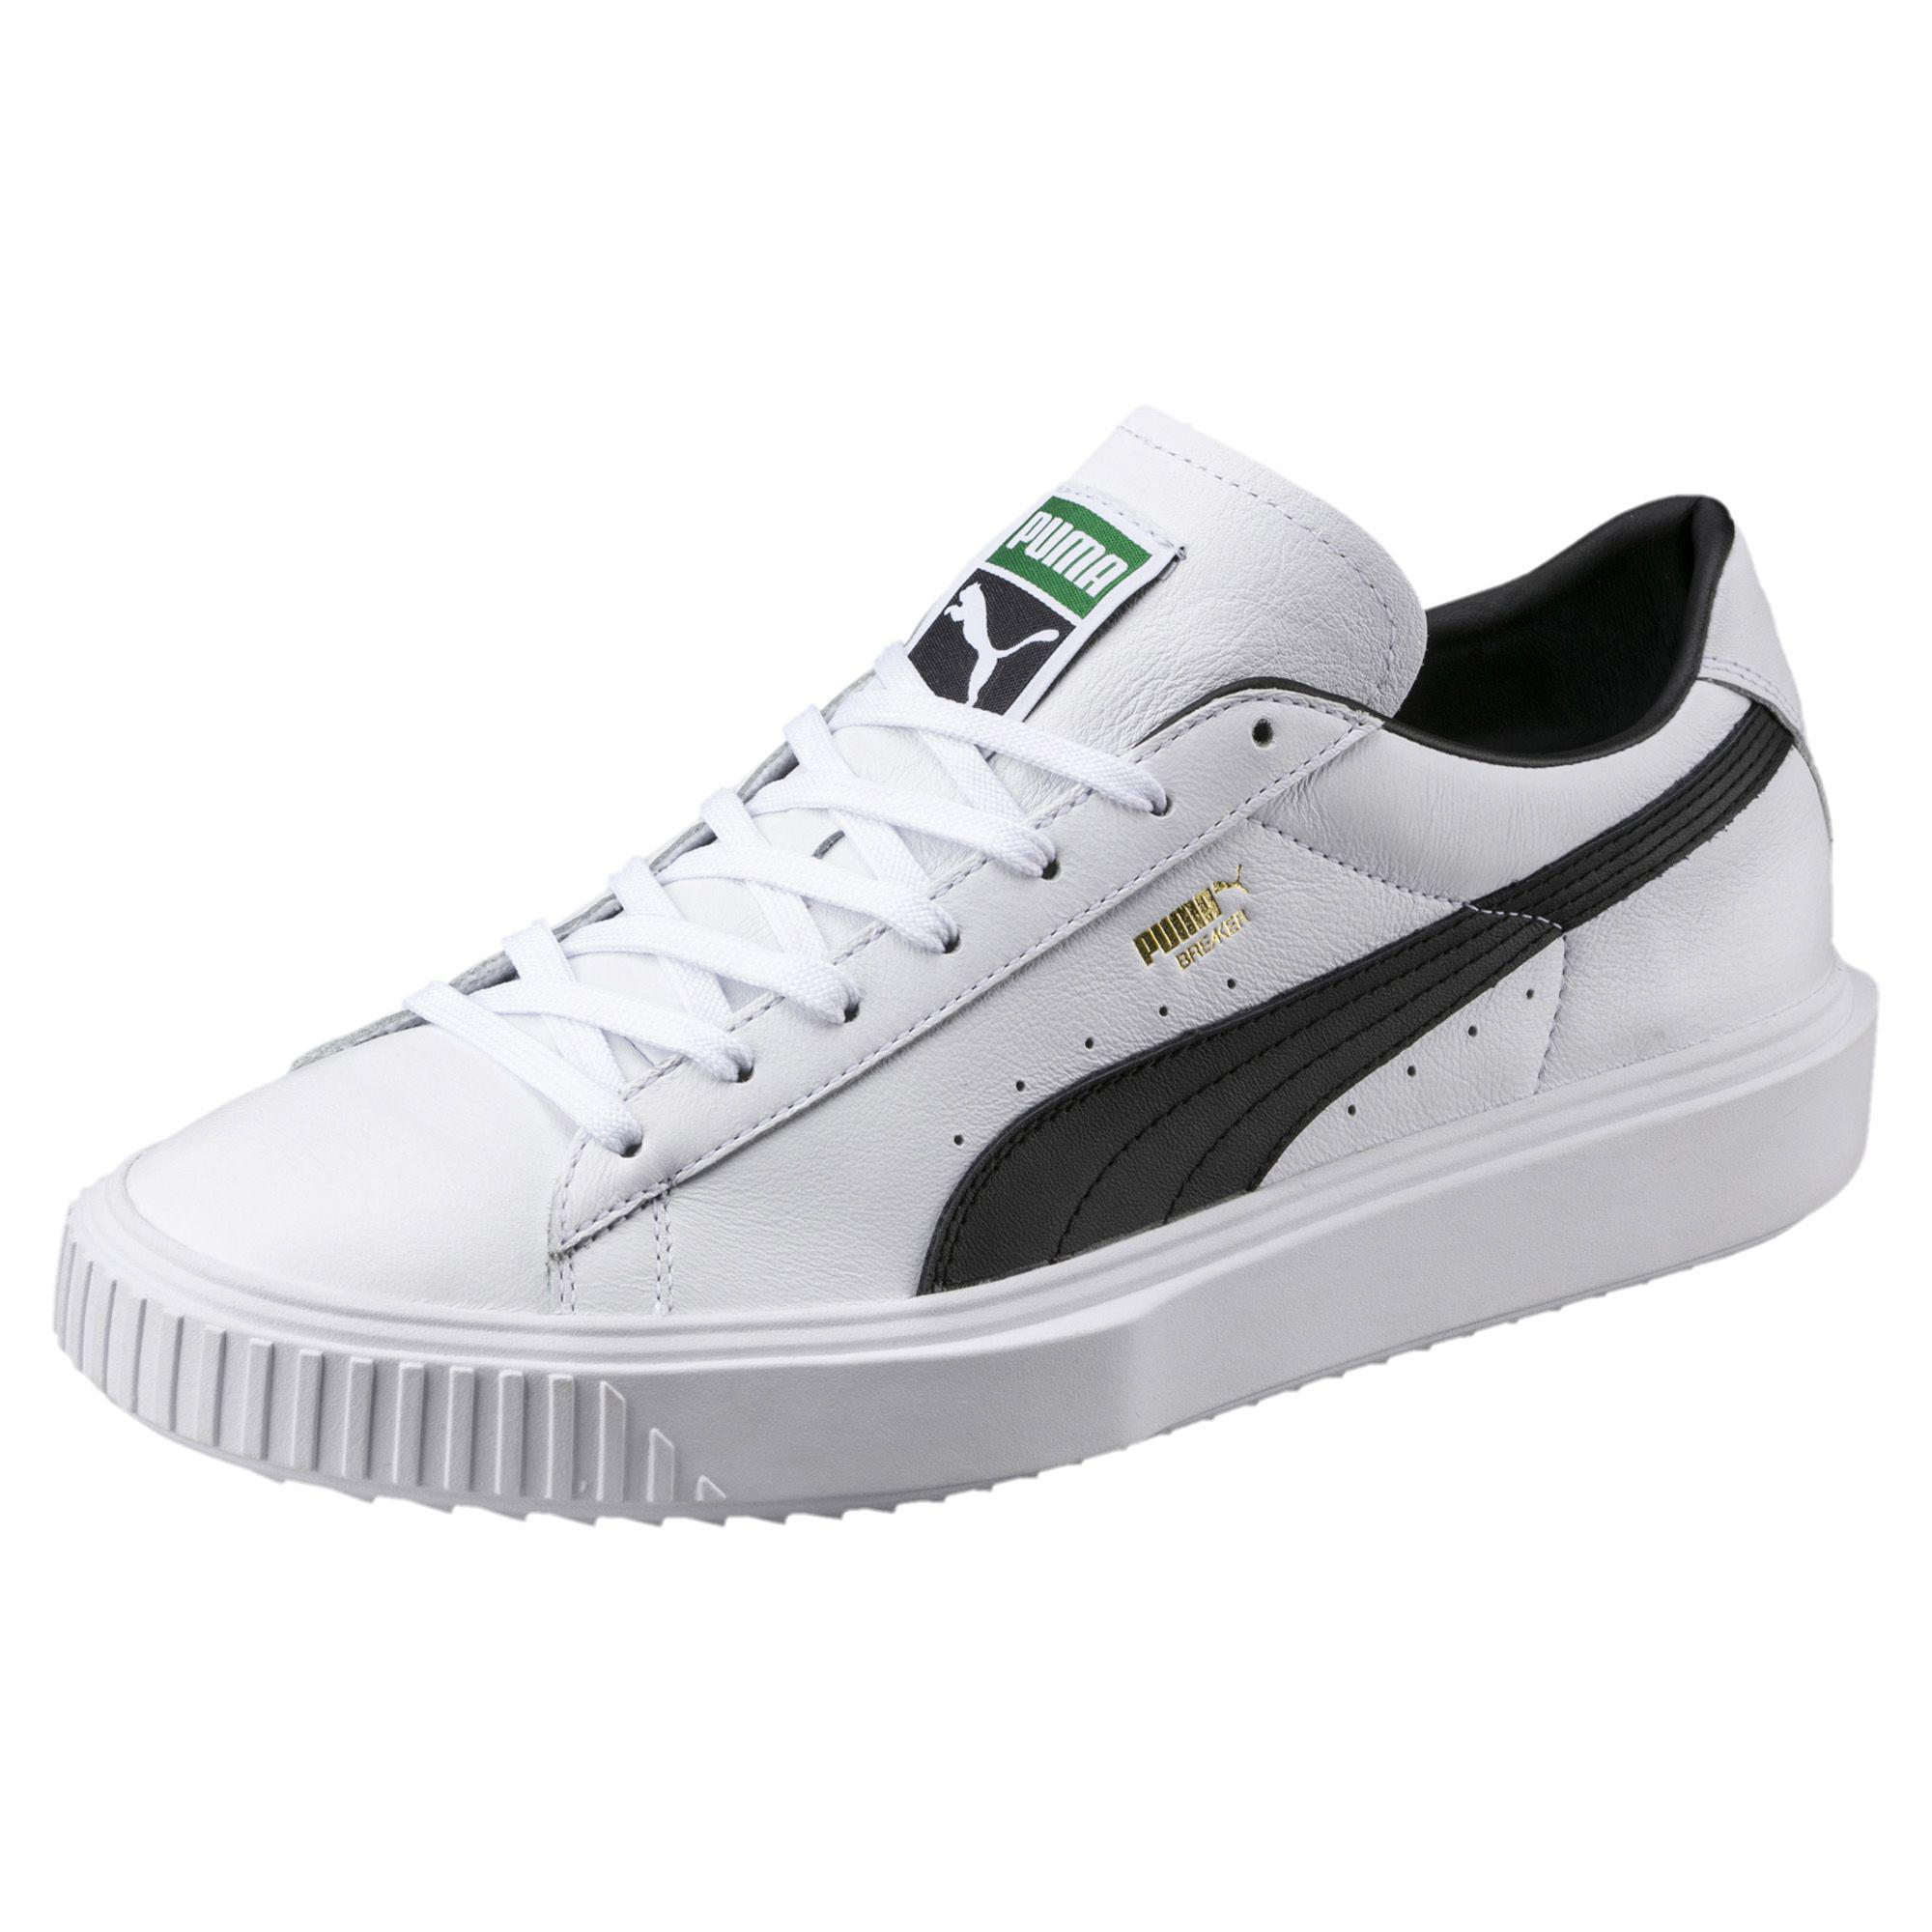 6680430247f79c Lyst - PUMA Breaker Leather Sneakers in White for Men